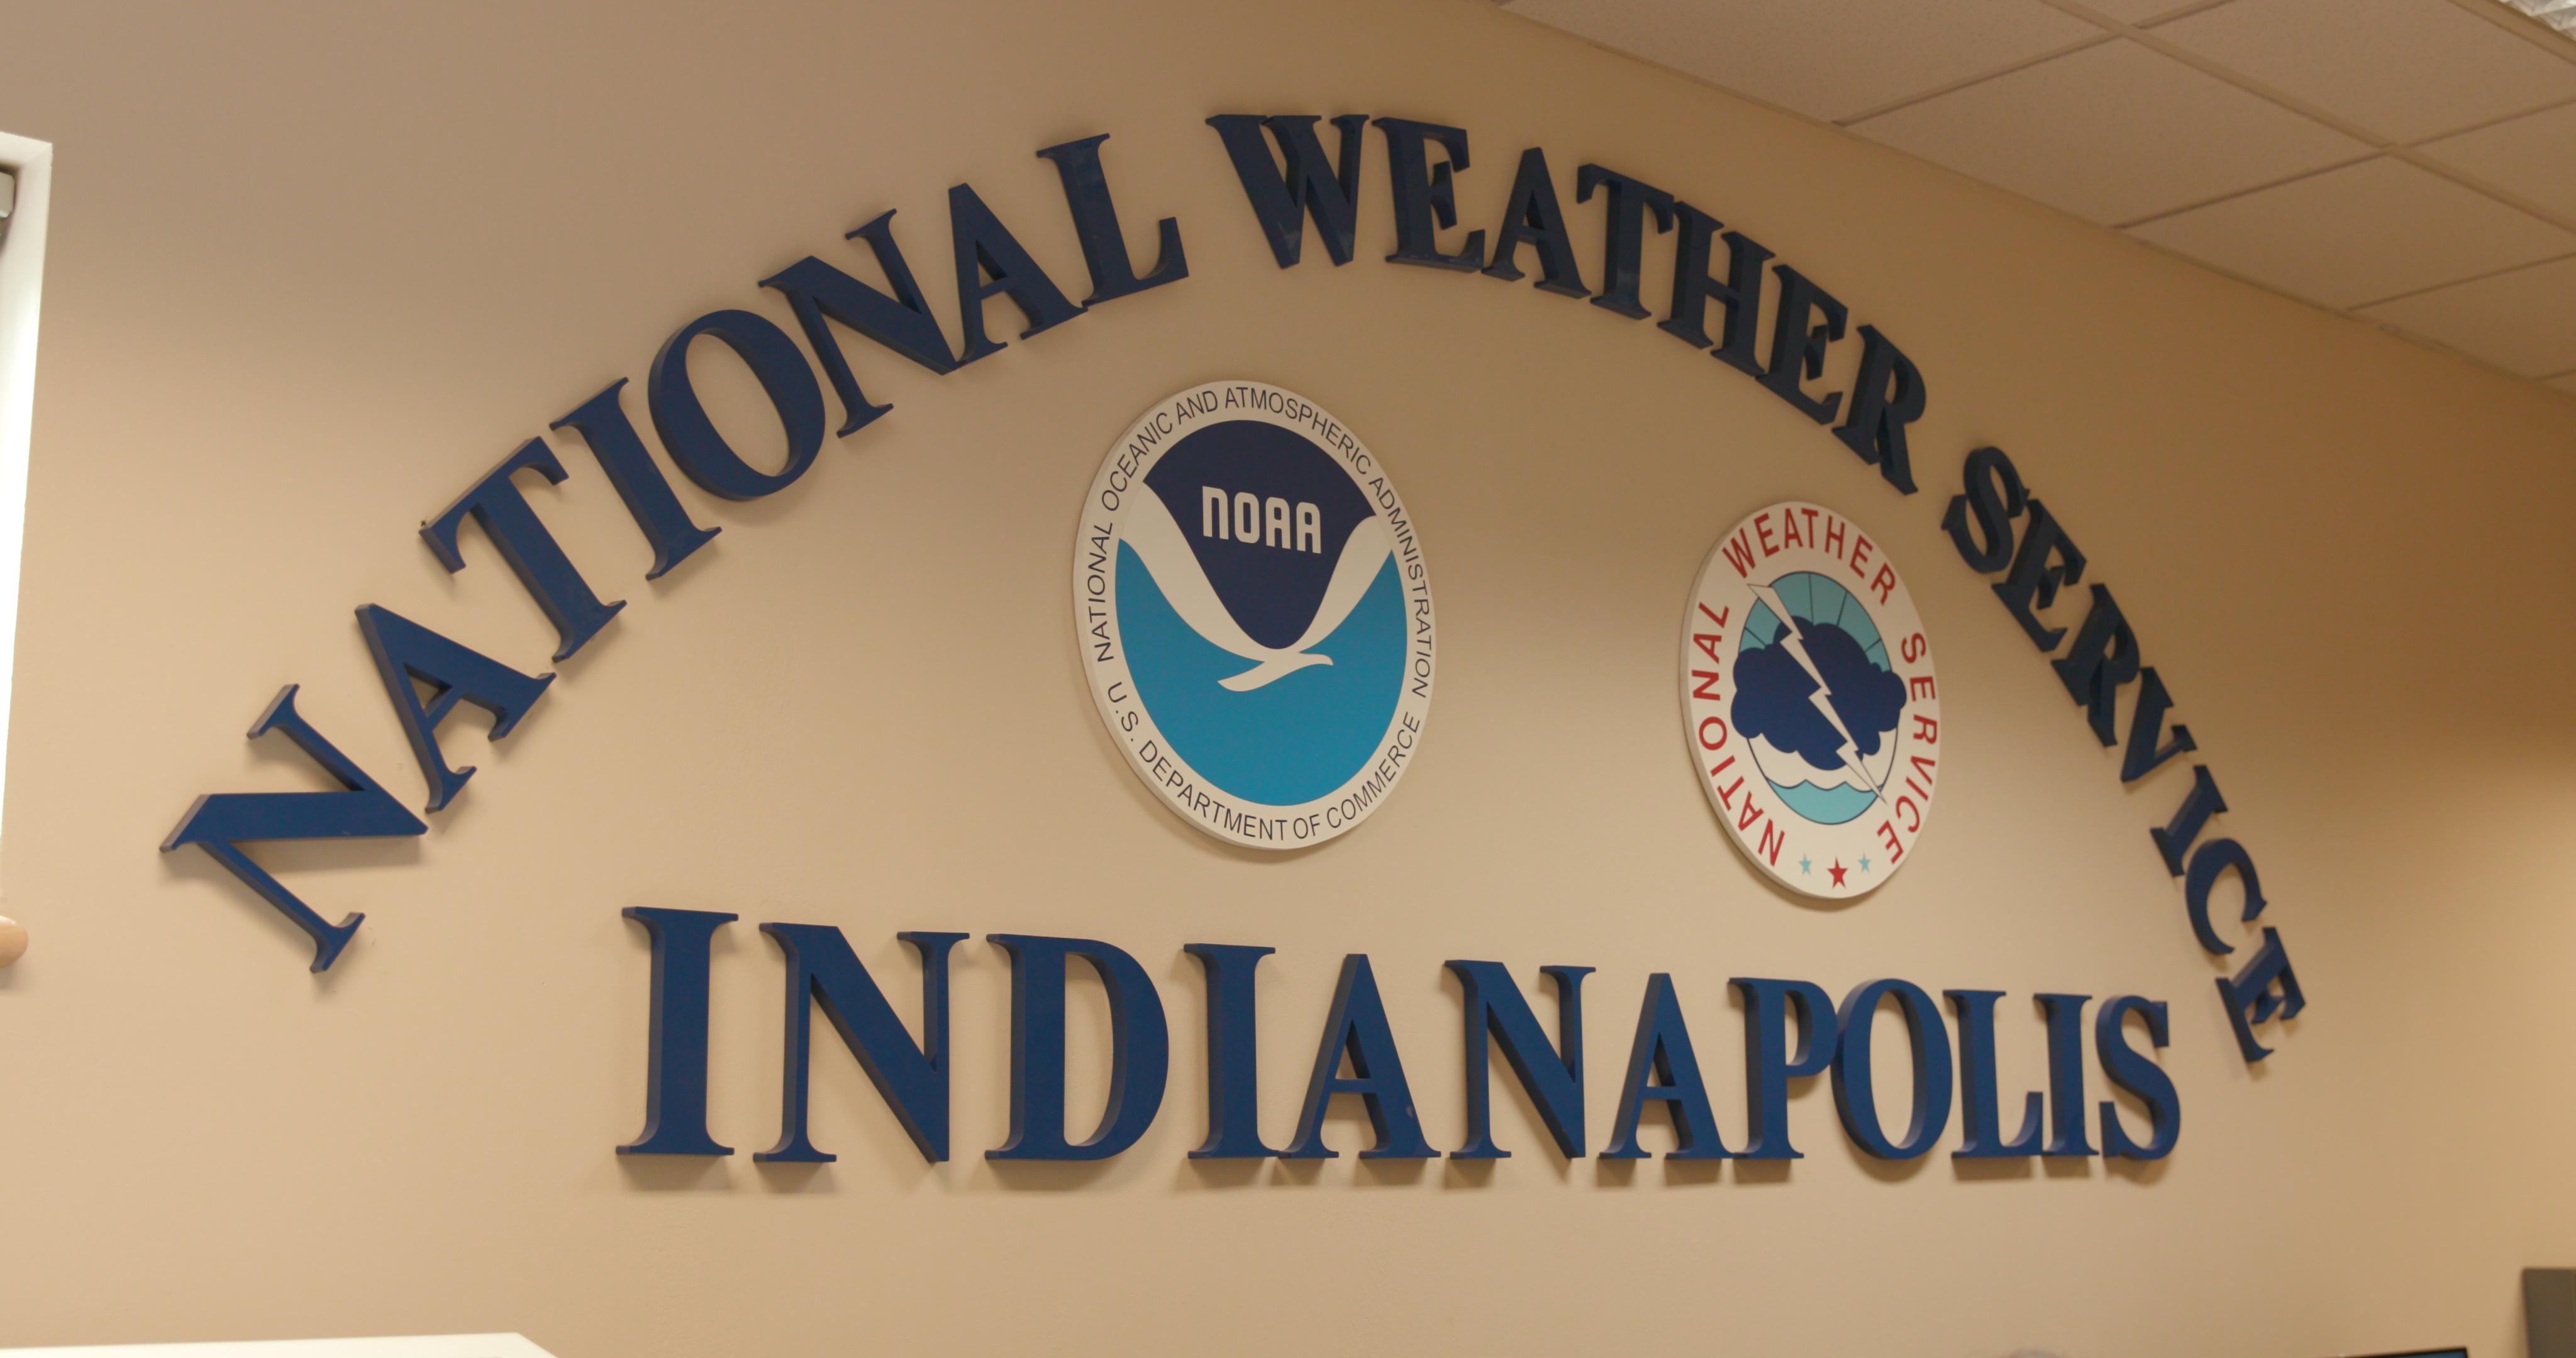 On this picture you can see a sign that reads National Weather Service Indianapolis.